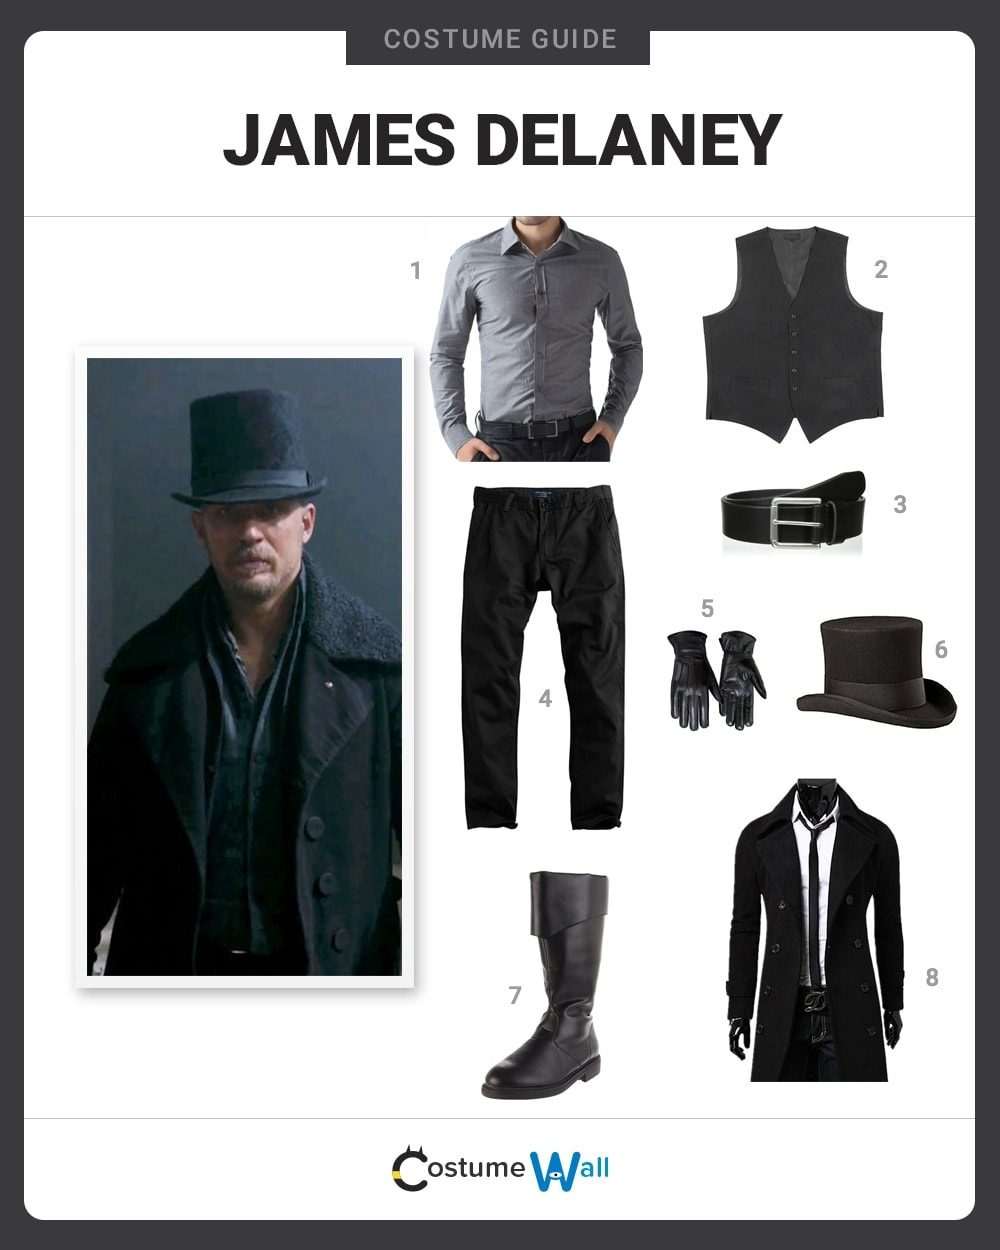 James Delaney Costume Guide